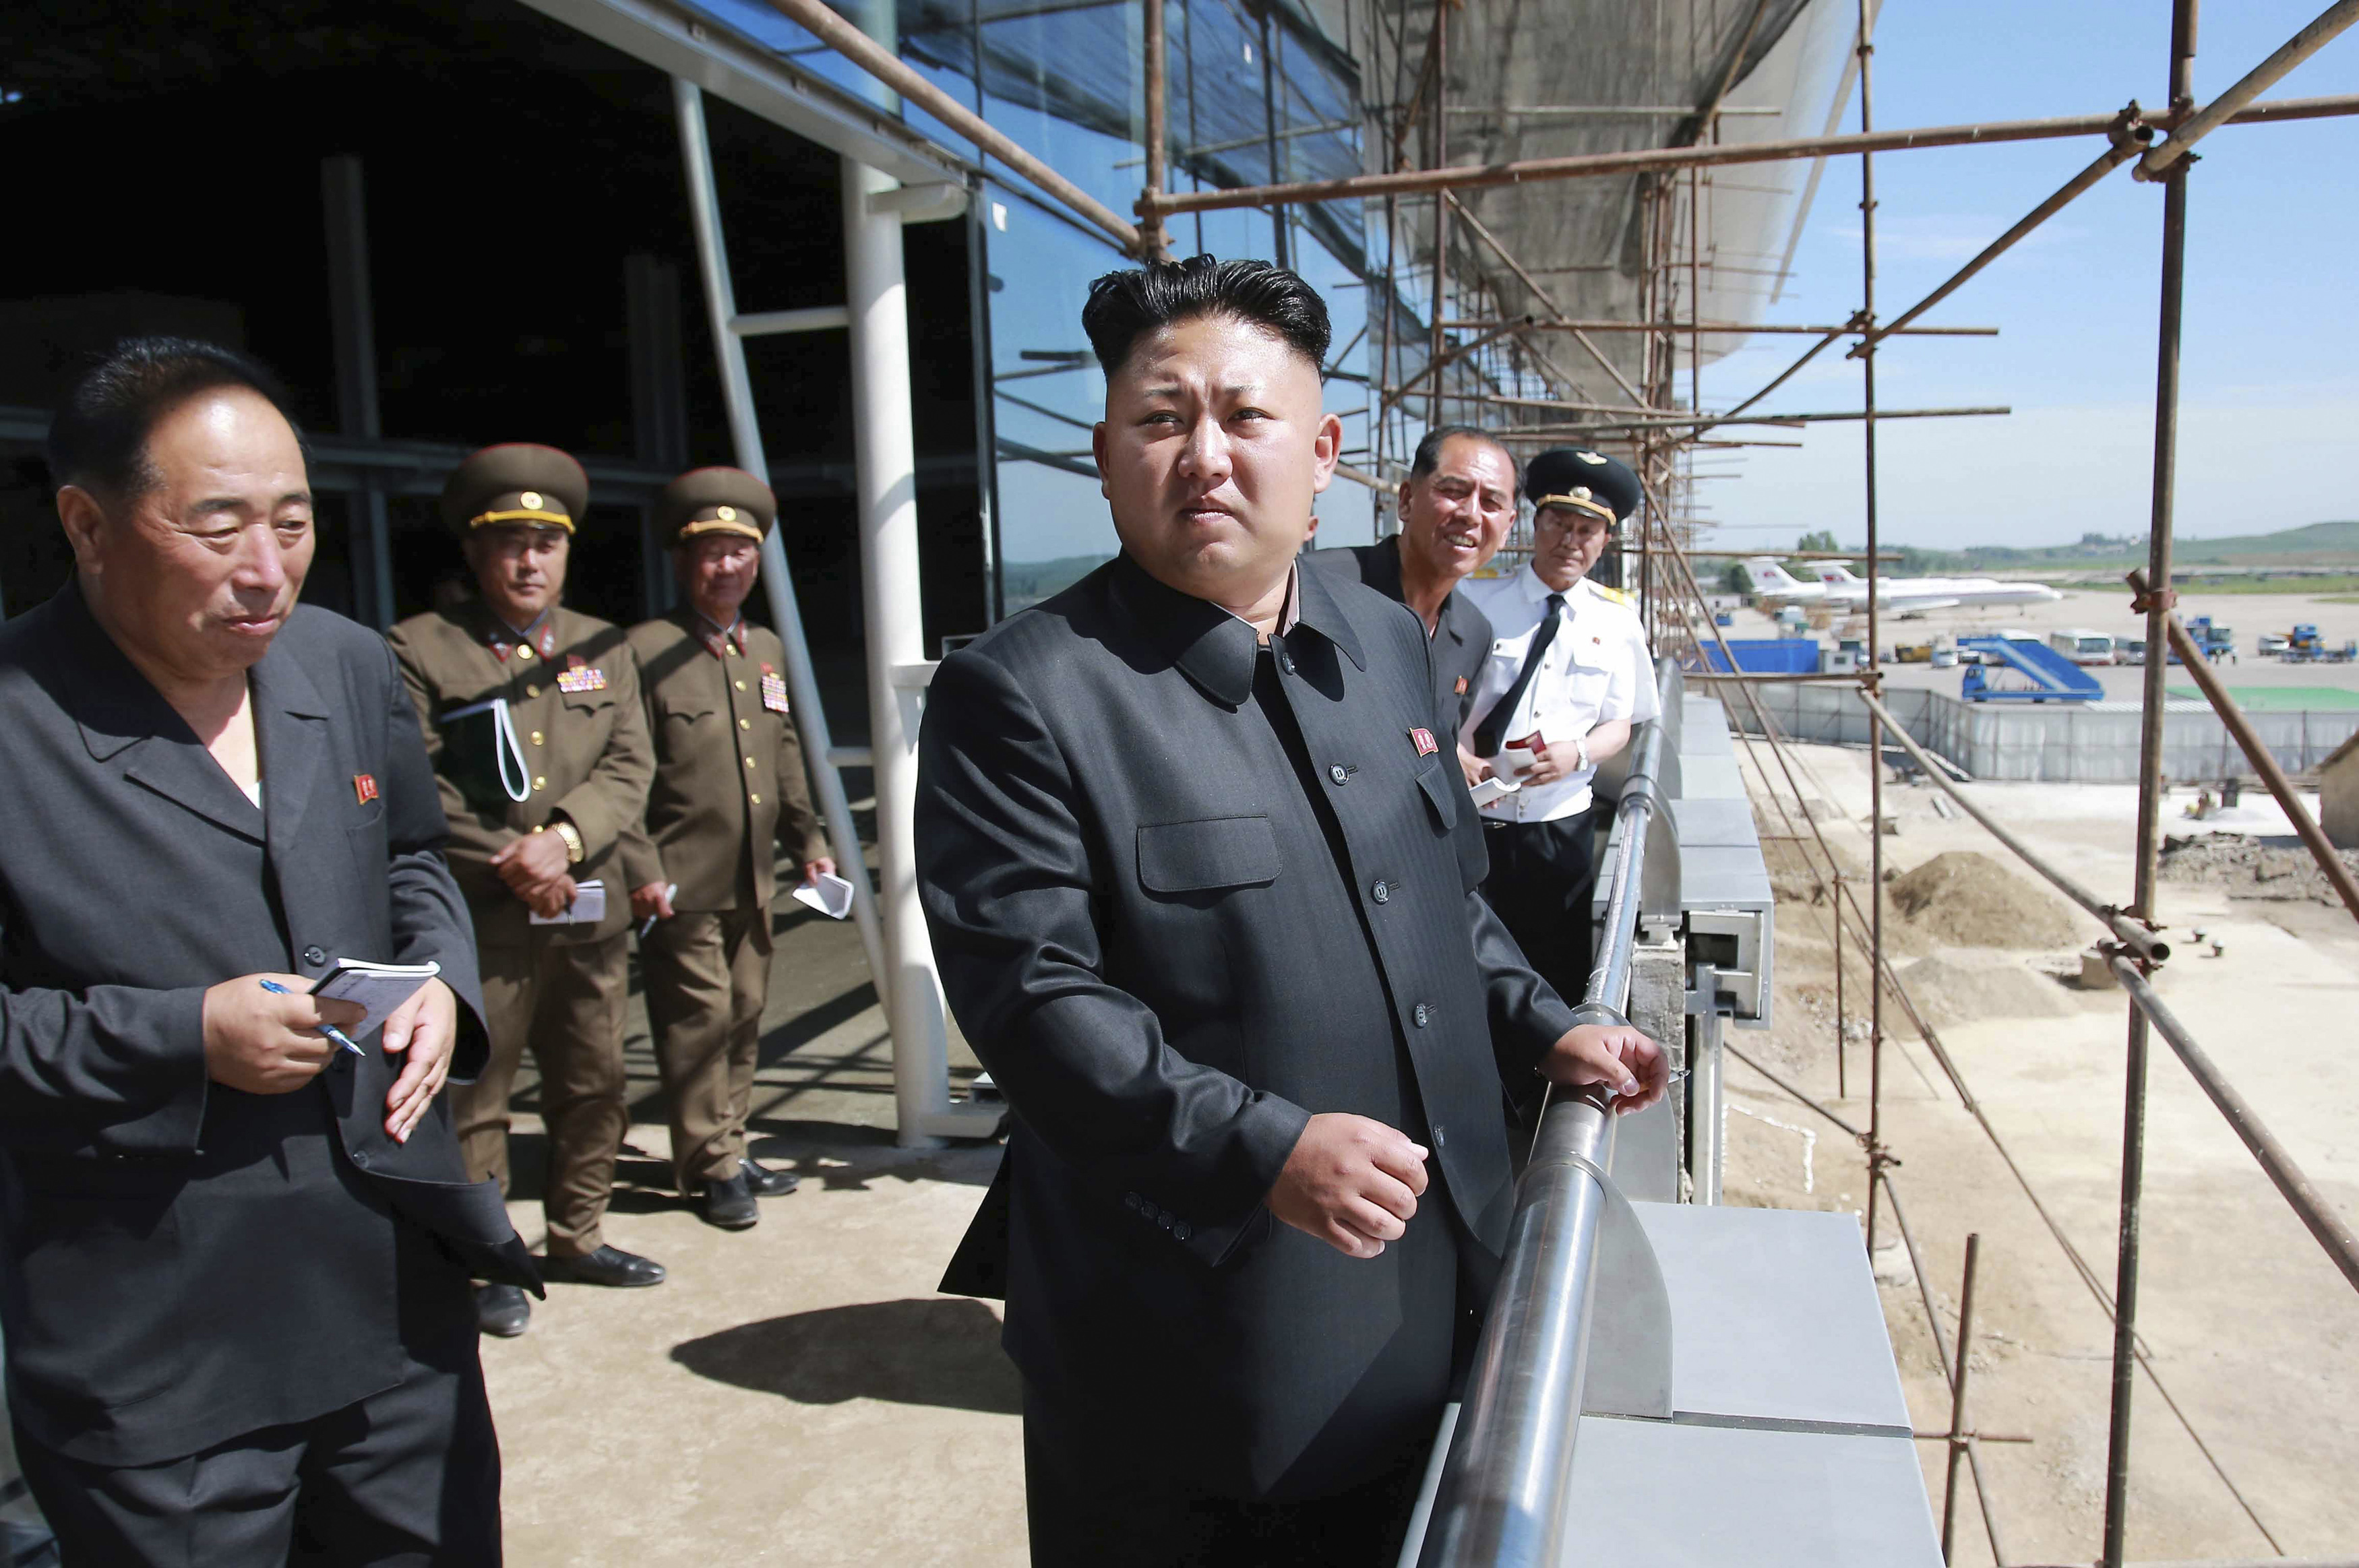 North Korean leader Kim Jong Un pays a visit to the construction site of a terminal at Pyongyang International Airport in this undated photo released by North Korea's Korean Central News Agency (KCNA) in Pyongyang on July 11, 2014.